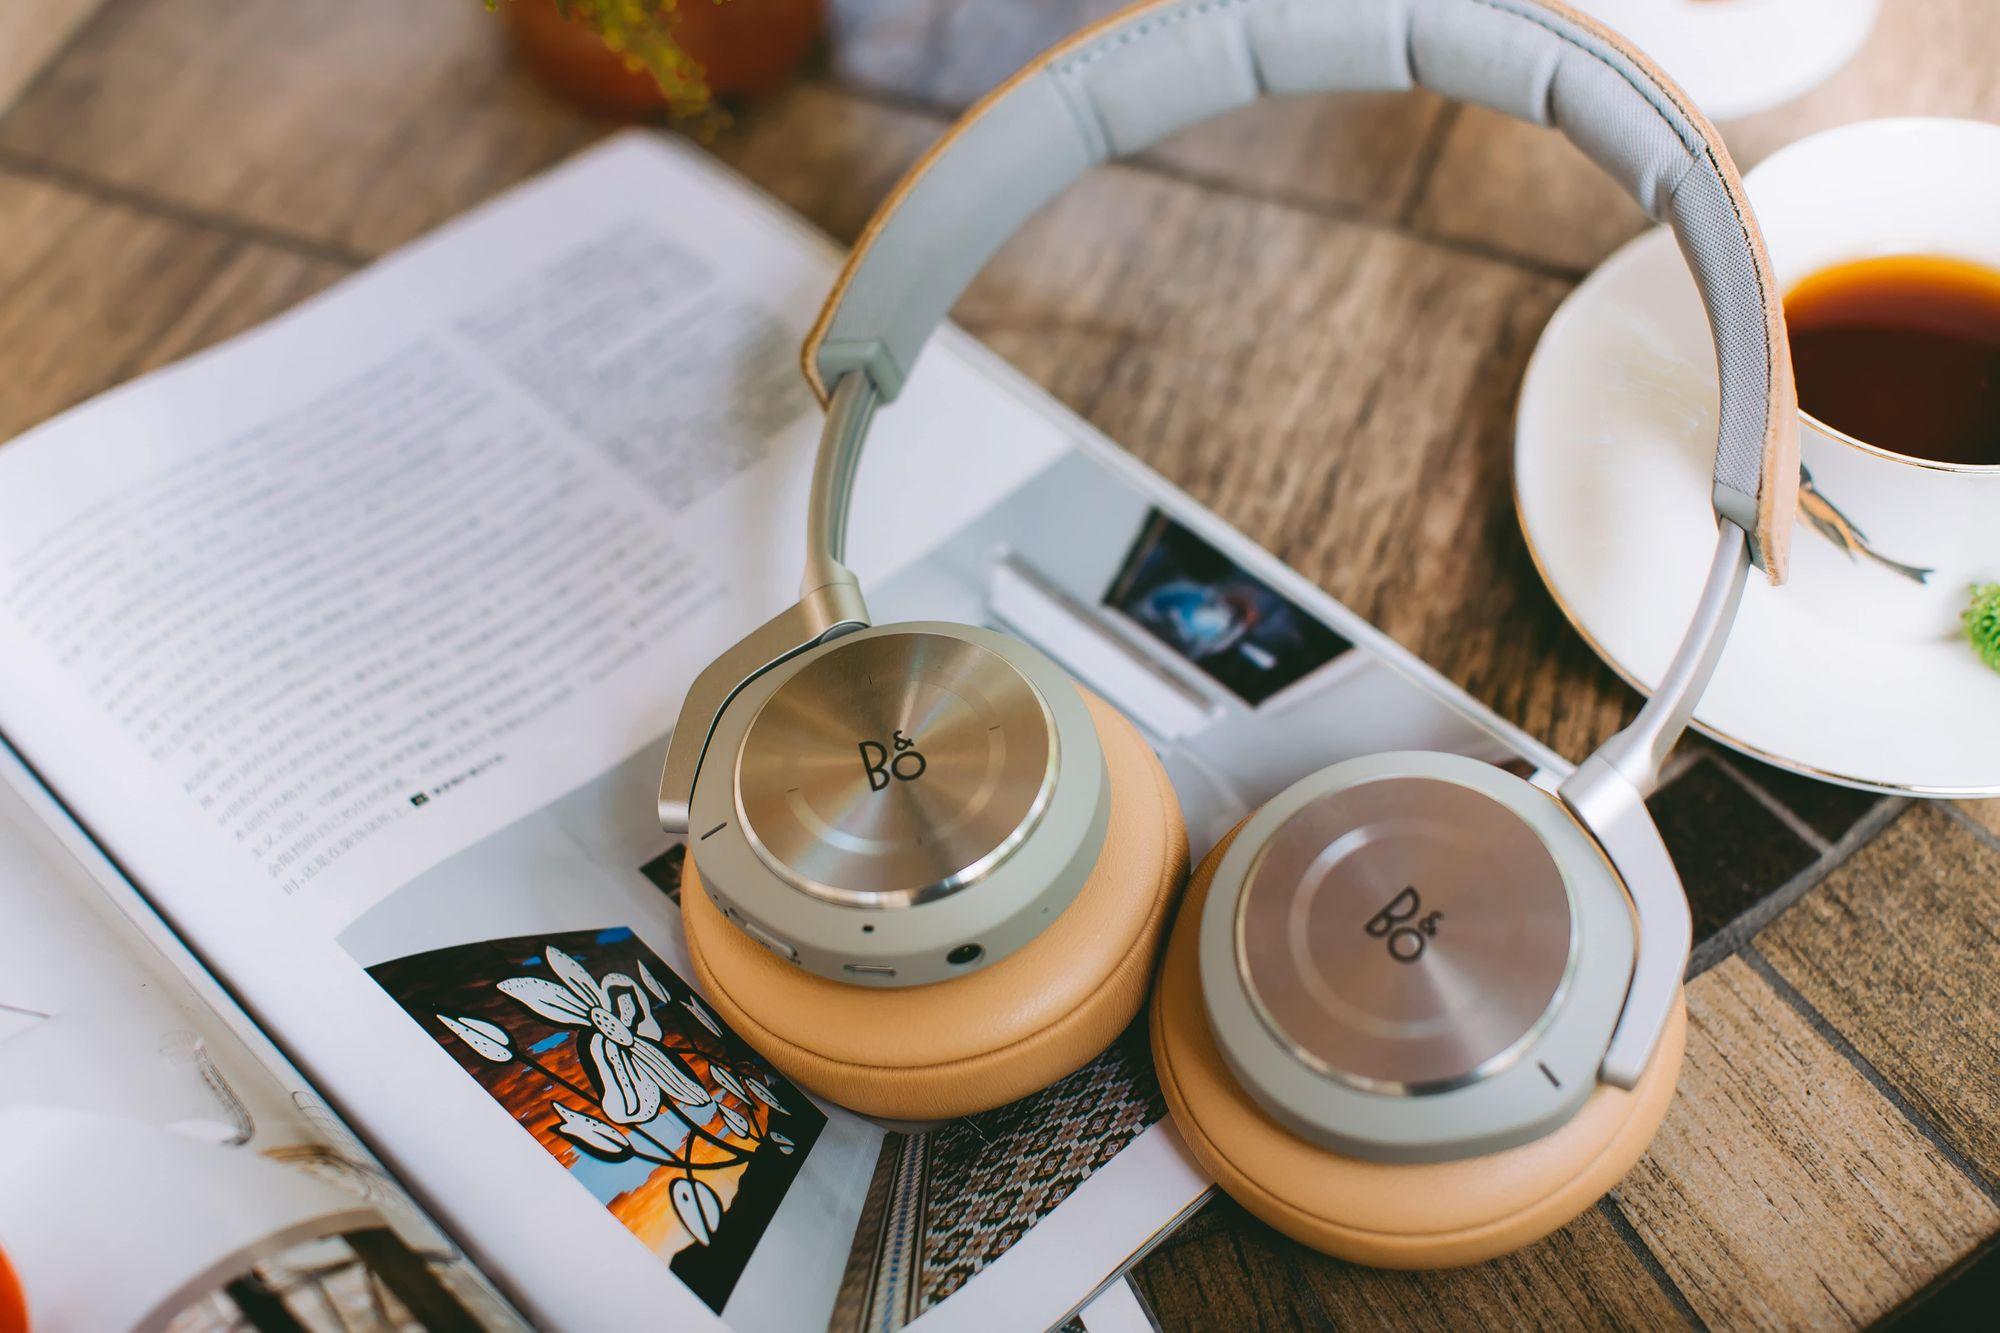 Book, headphones, and a coffee cup